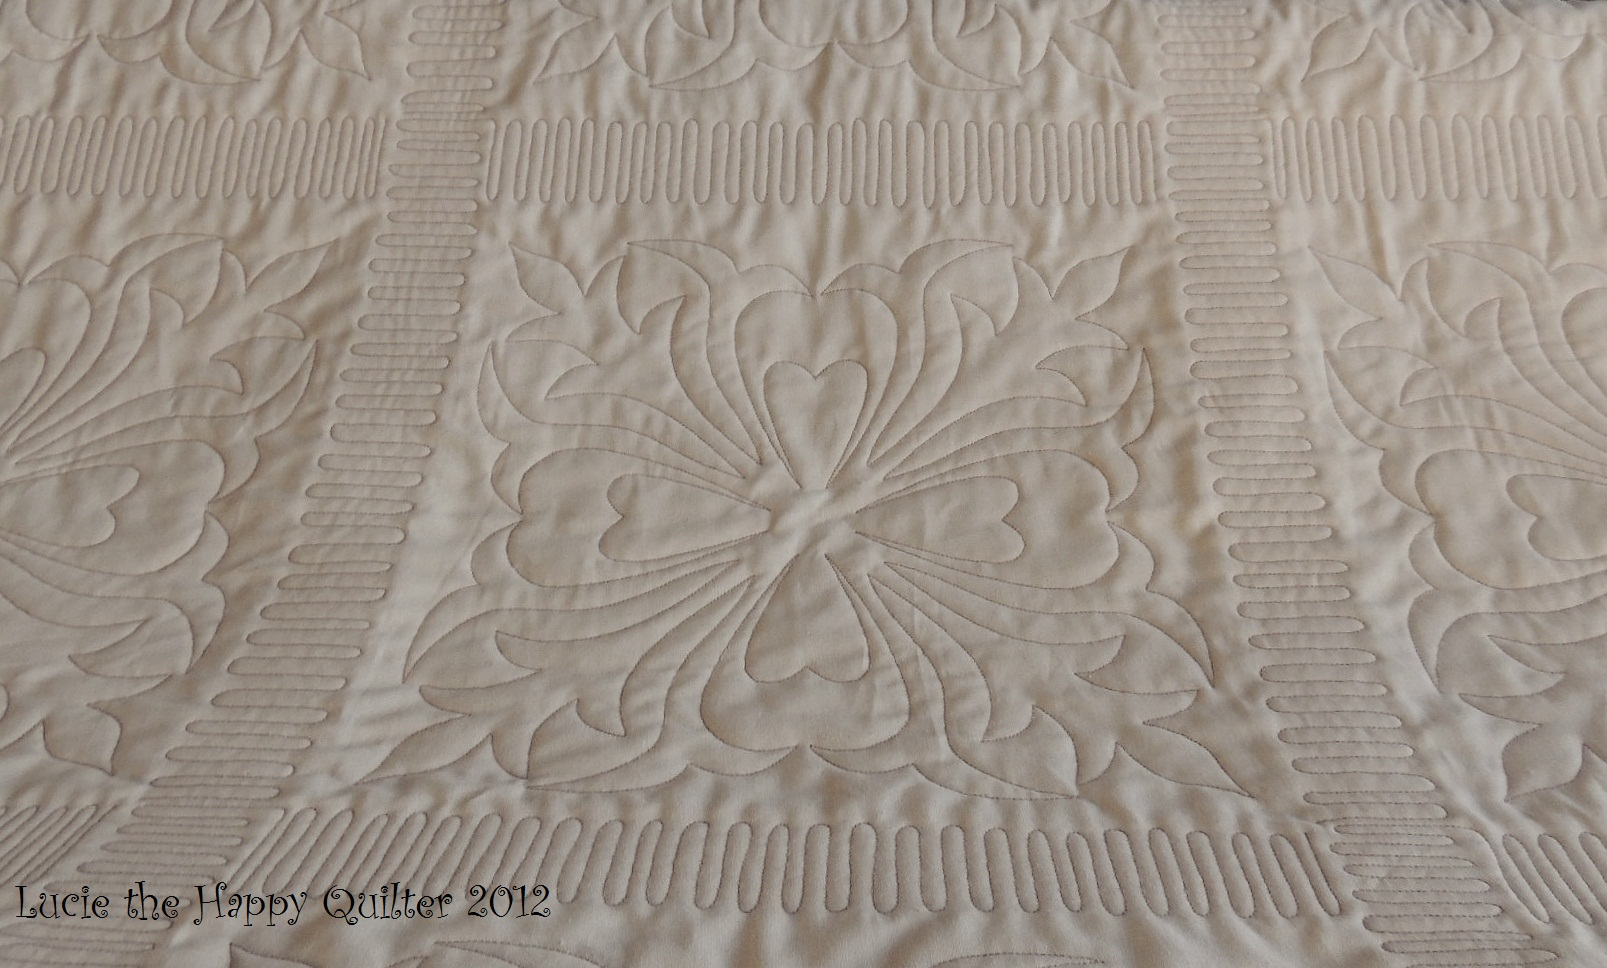 Free Motion Quilting Designs For Sashing : knitting Lucie The Happy Quilter s Blog